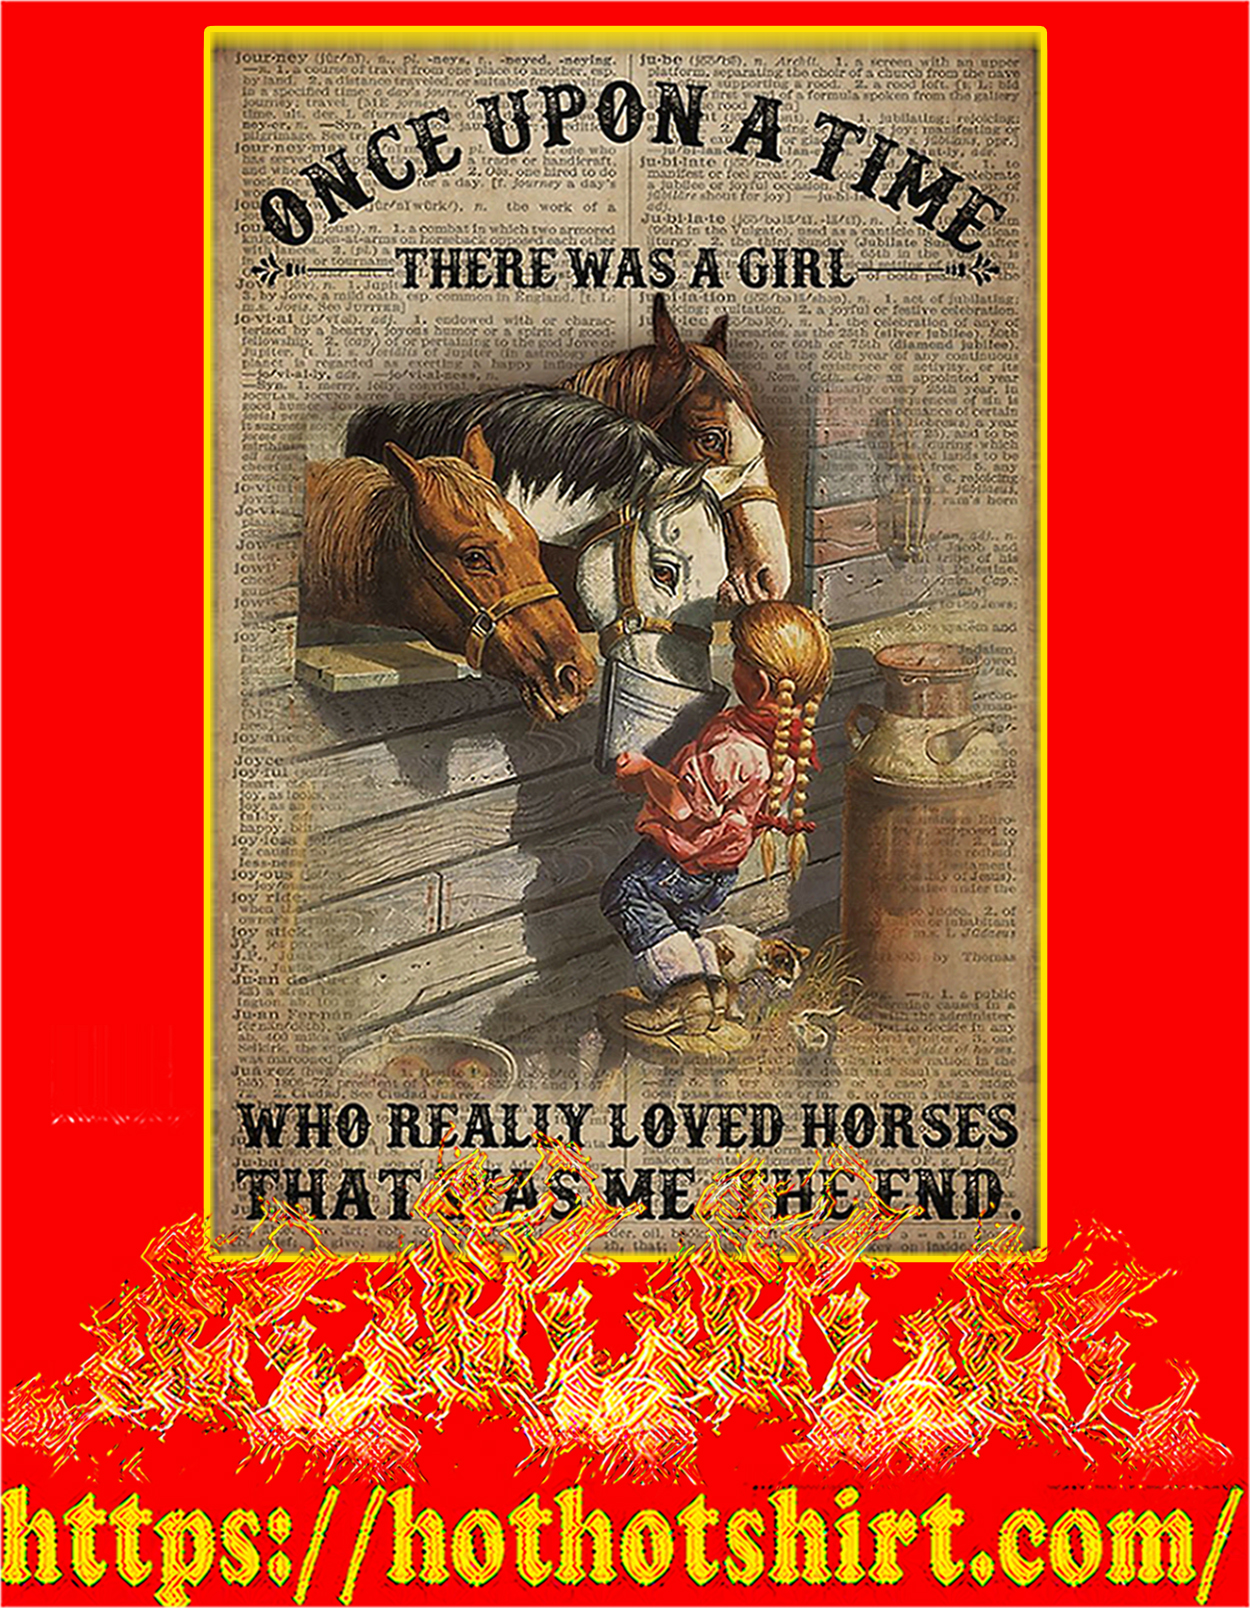 Once upon a time there was a girl who really loved horses poster - A3